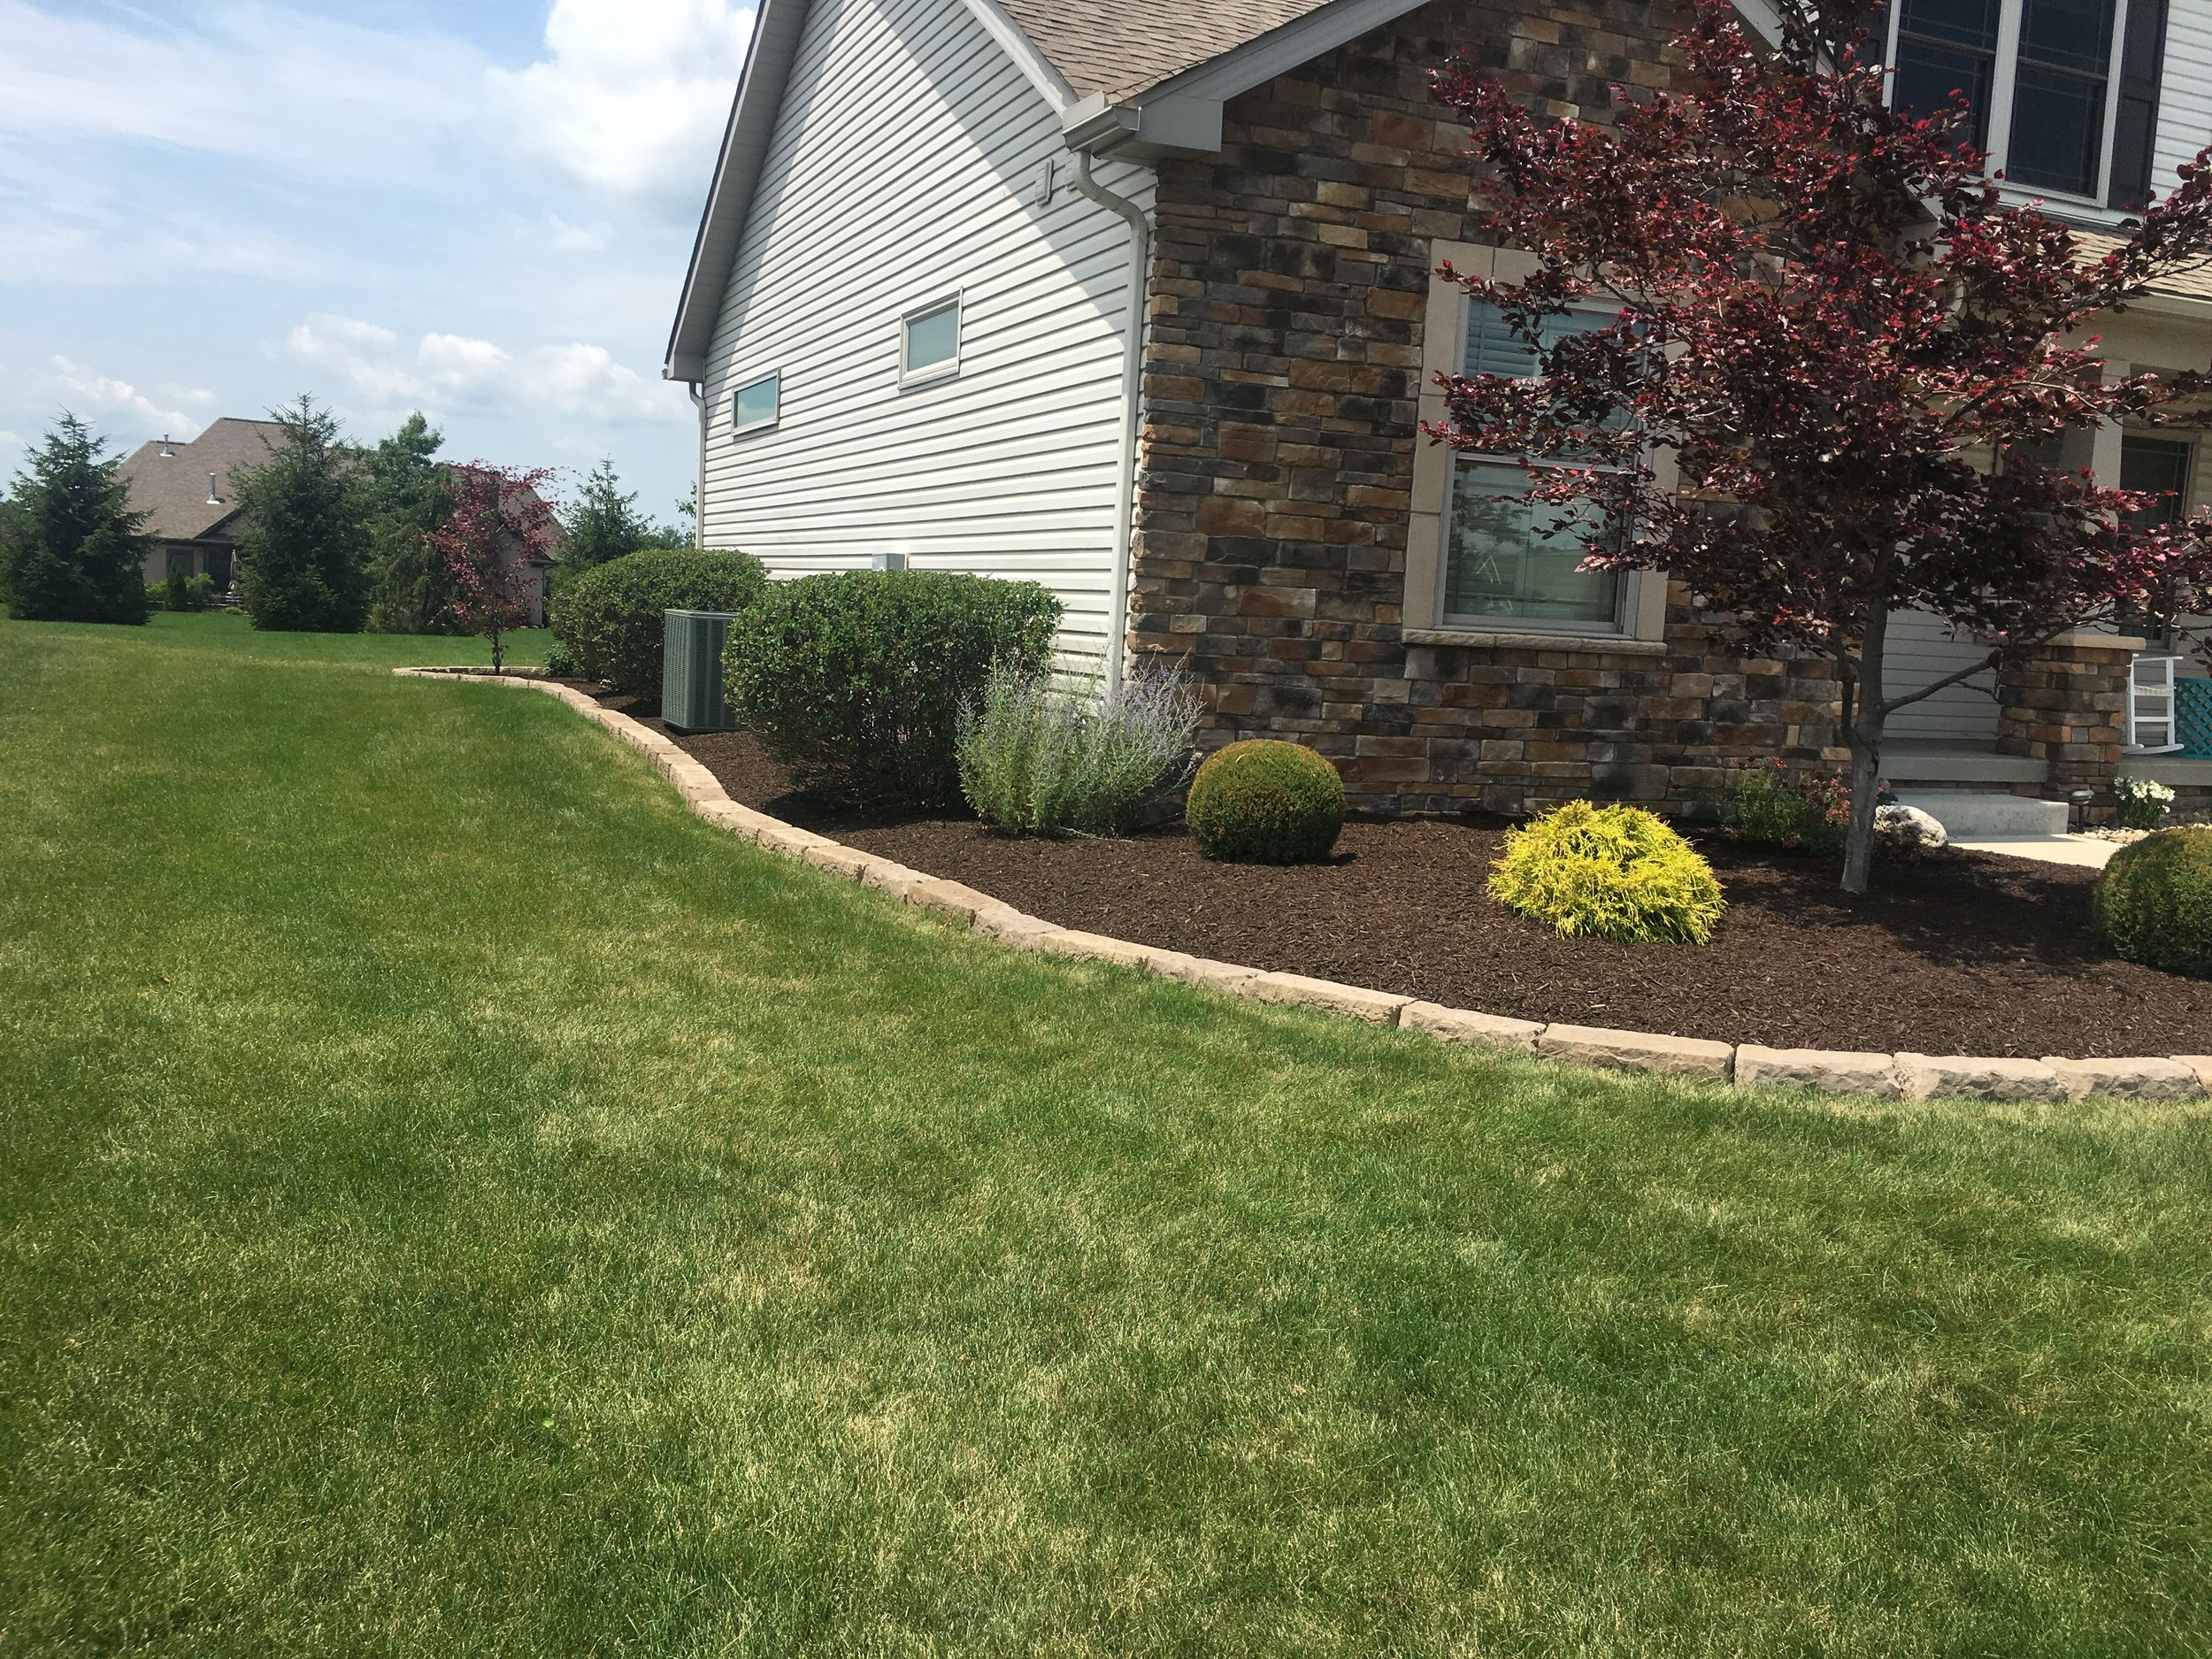 Lawn Care near Wooster Ohio